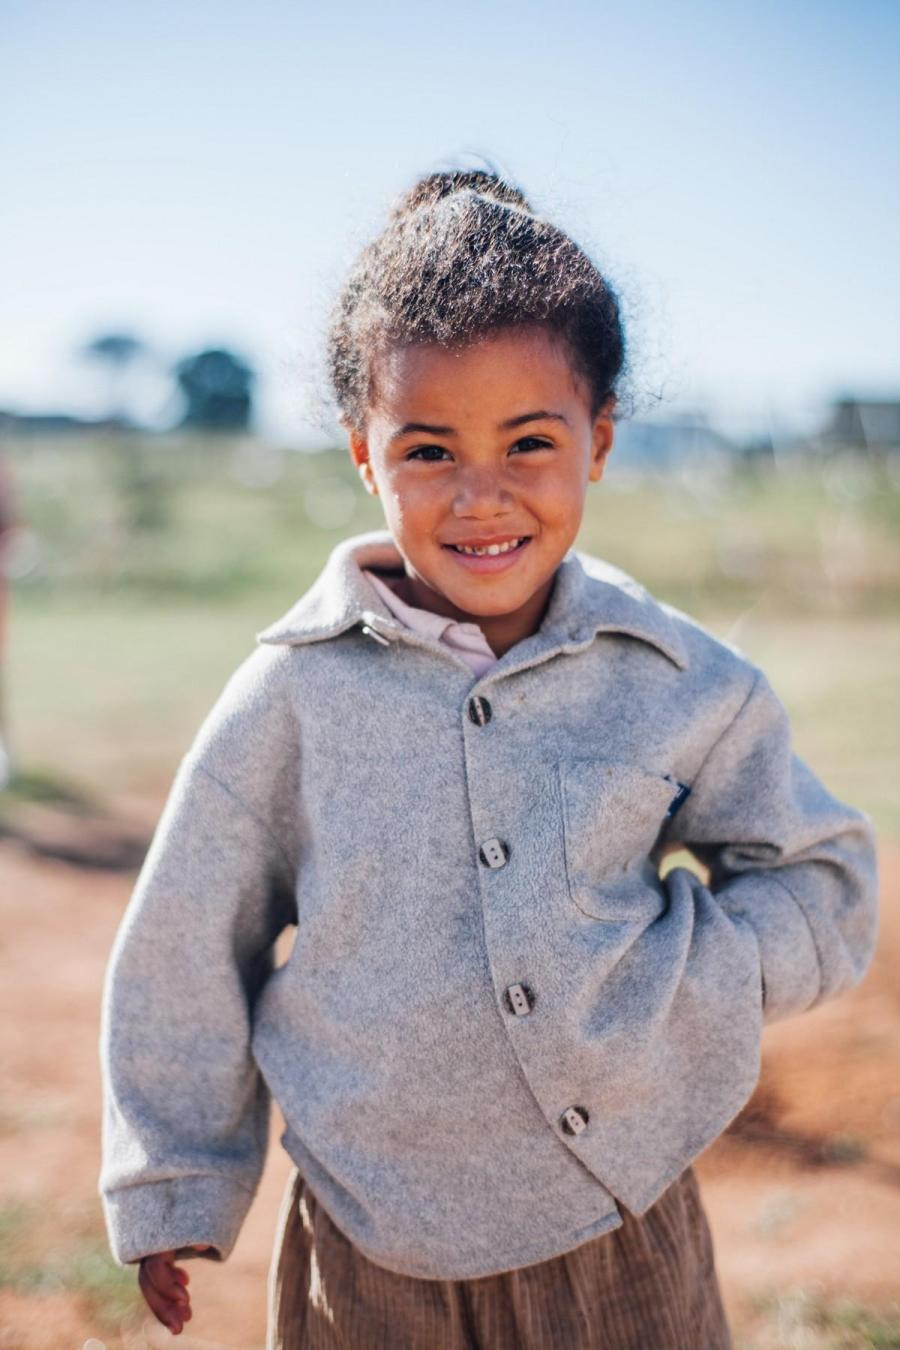 Prejudice is built socially from our interactions with the world and with others. With each interaction and exchange, the child also absorbs and understands the world.